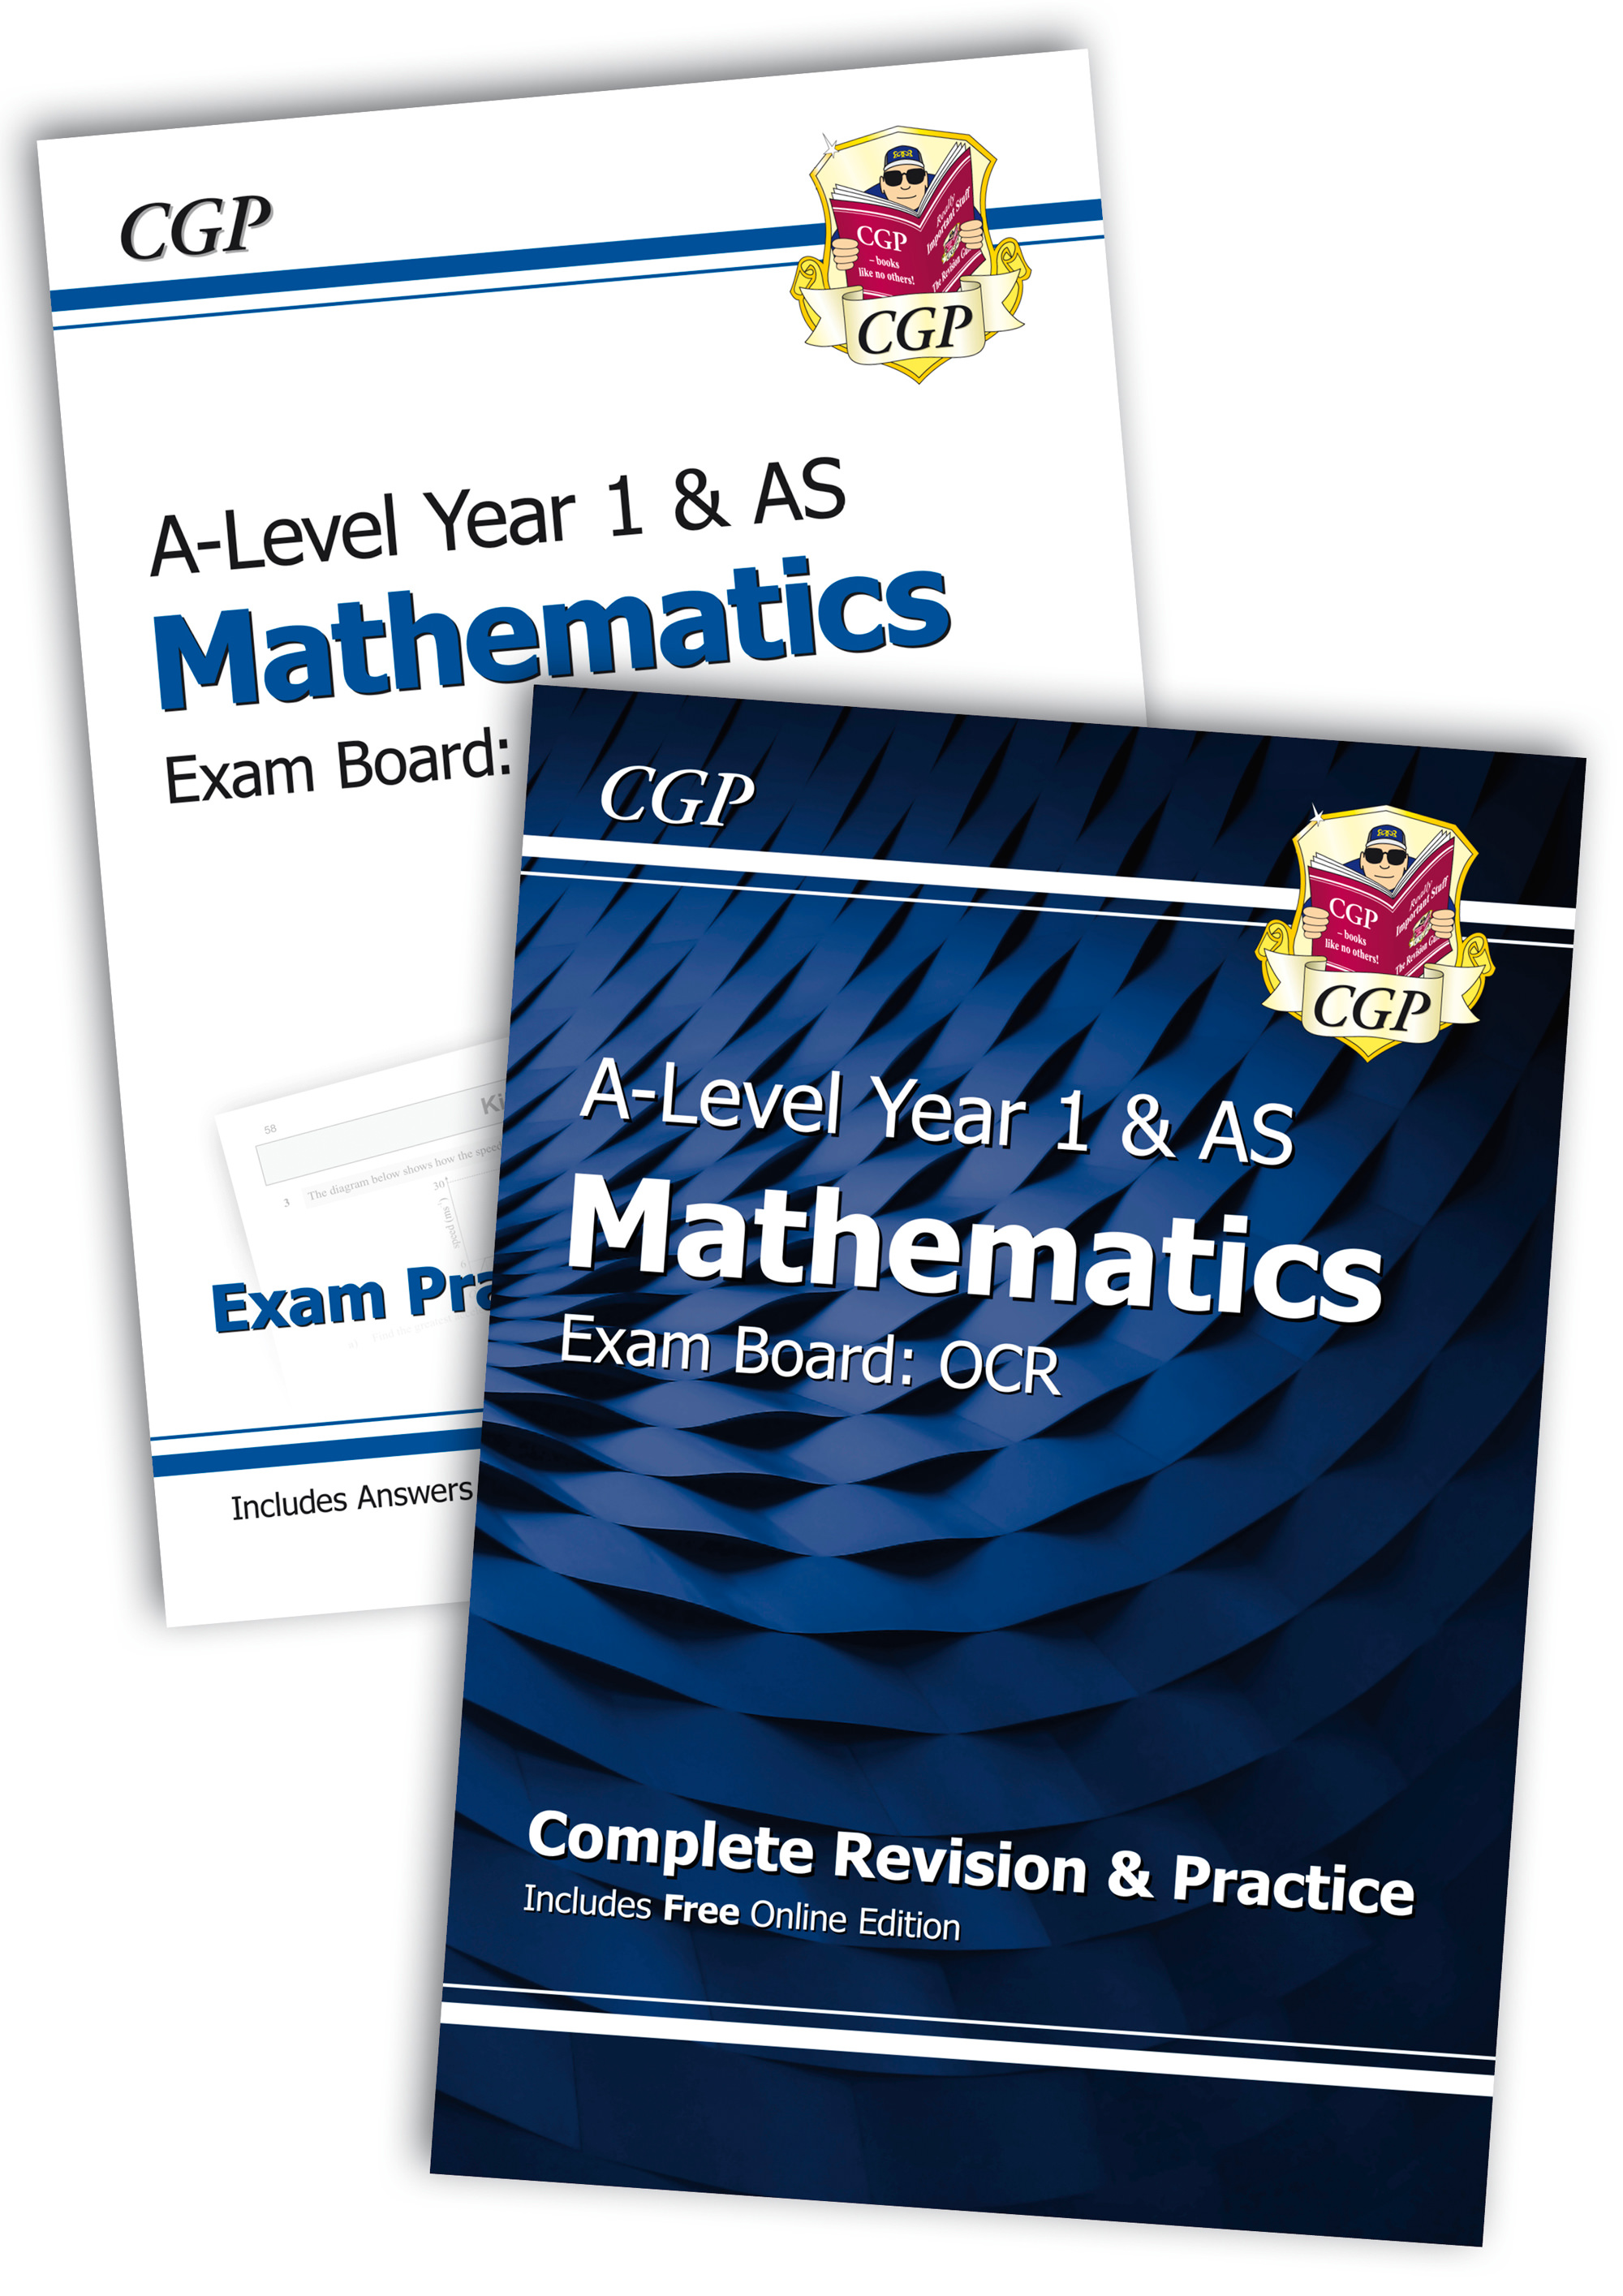 MRMB51 - Complete Revision and Exam Practice A-Level Maths Bundle: OCR MEI Year 1 & AS